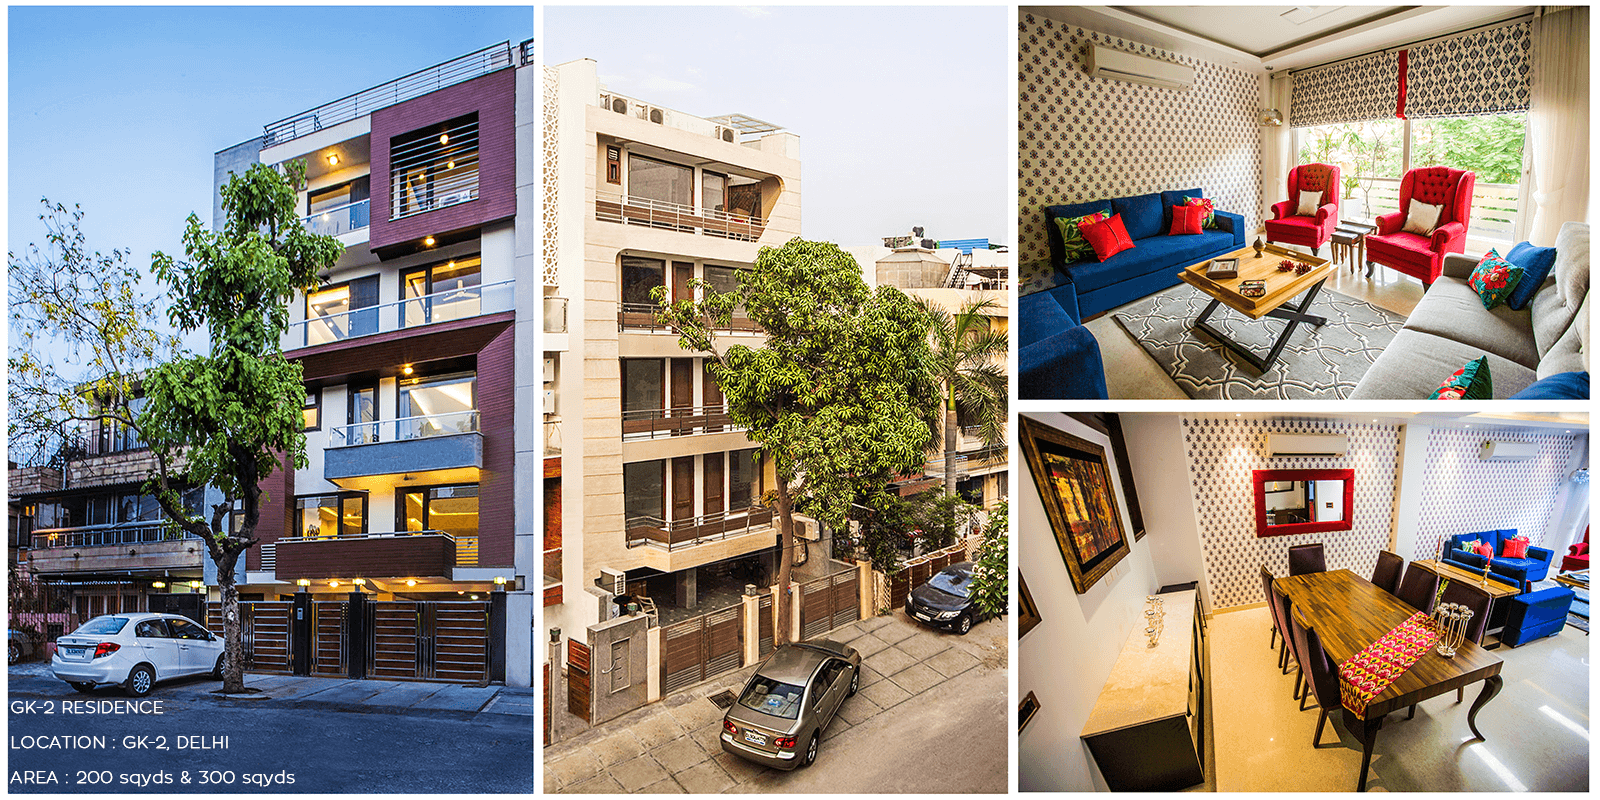 gk2-residence-the-novarch-architects-best-architects-in-cr-park-south-delhi-110019